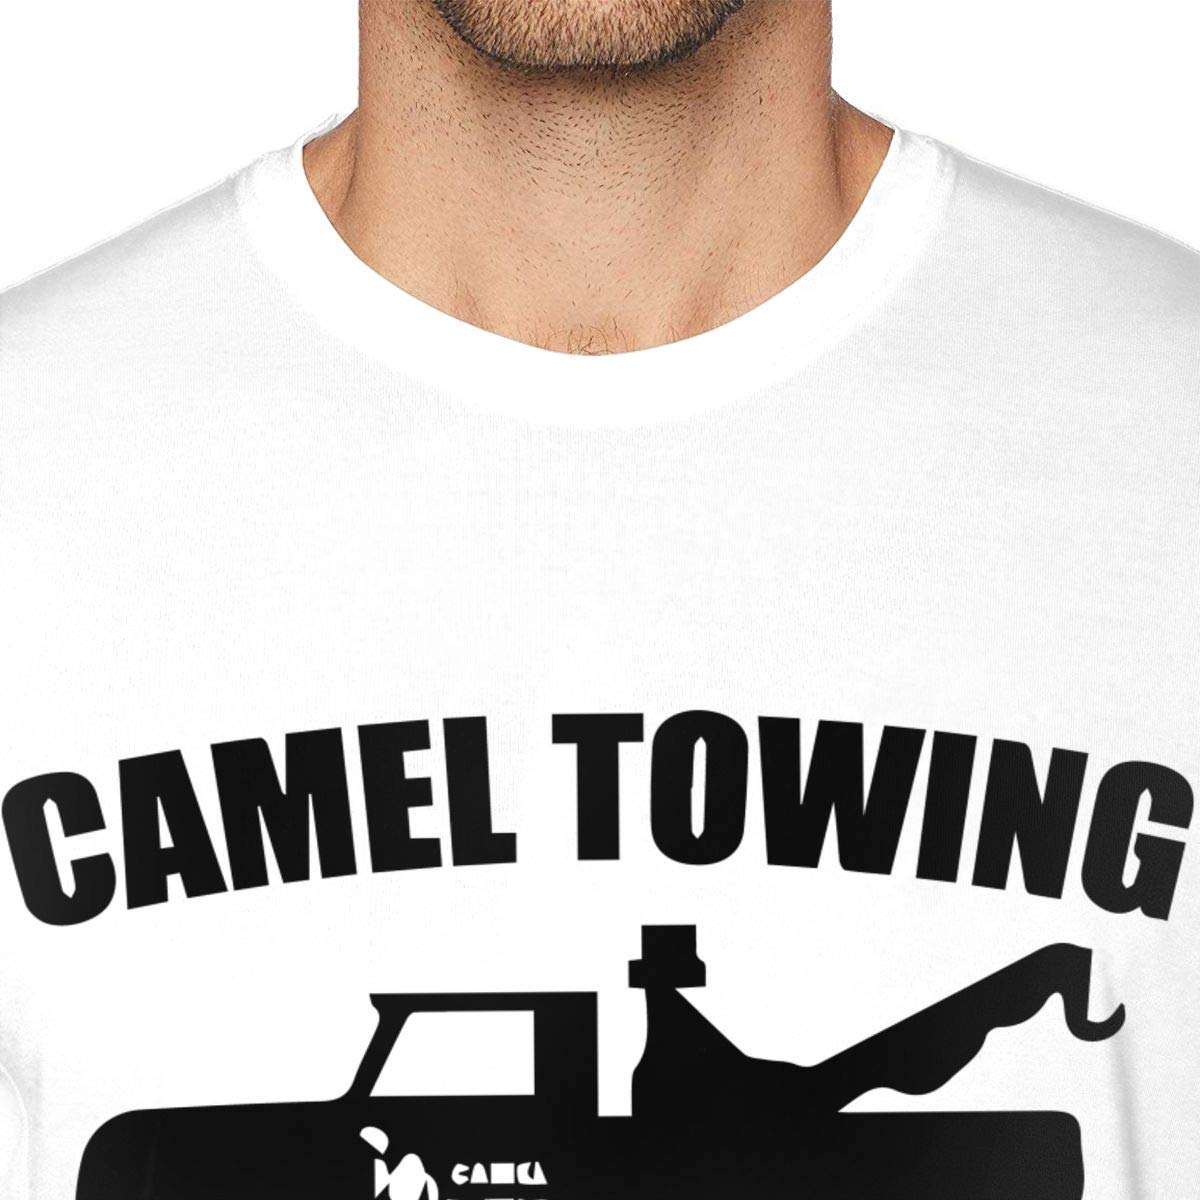 MSKKLA Camel Towing Rude Graphic T-Shirt Adult Summer Short-Sleeve T-Shirts T-Shirt Plus Size